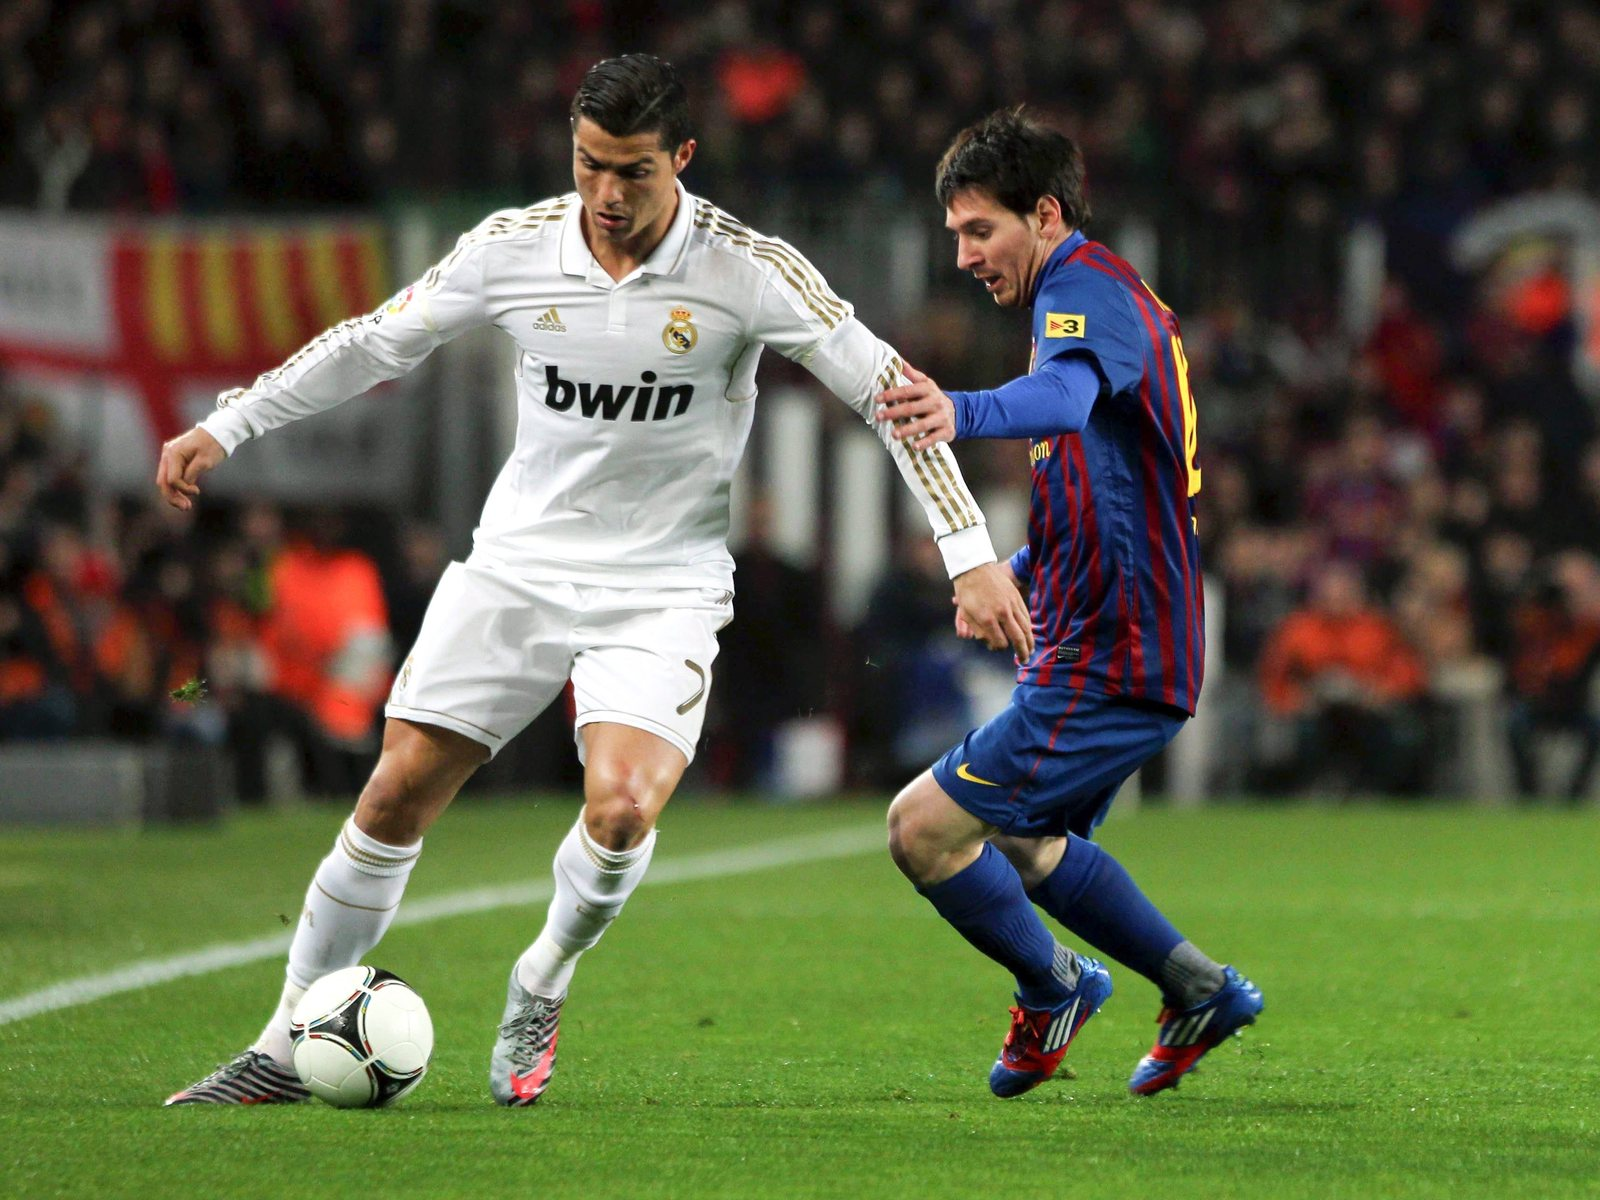 2012 13 Ronaldo Vs Messi Wallpaper 2012 13 Ronaldo Vs Messi Wallpaper